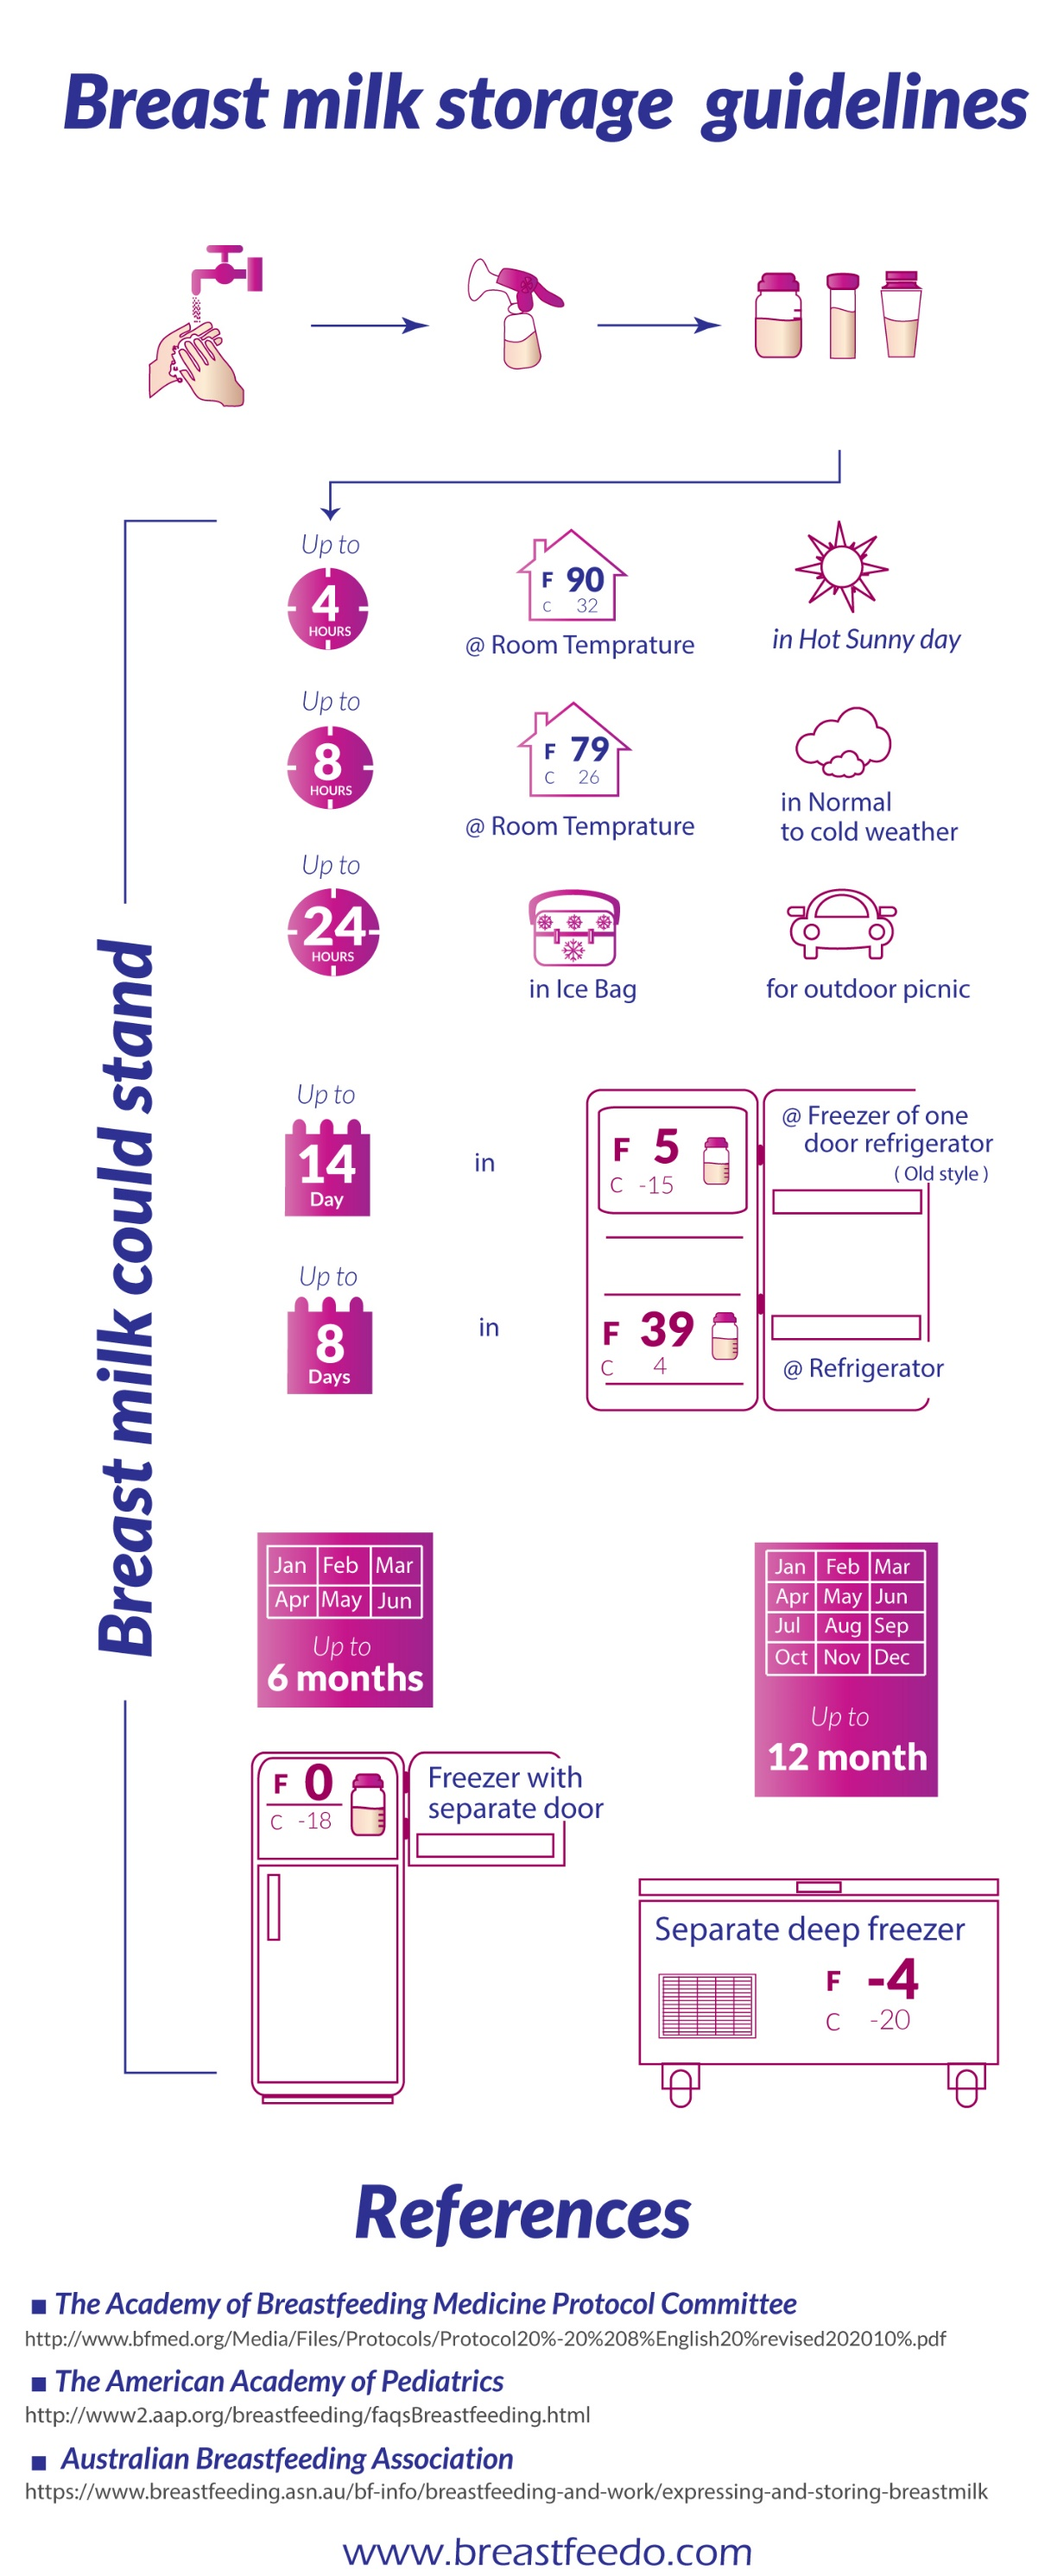 Breast Milk Storage Guidelines Infographic - Special Thanks to breastfeedo.com Read more at happyhumanpacifier.com. #breastmilkstorage #breastmilkstorageguidelines